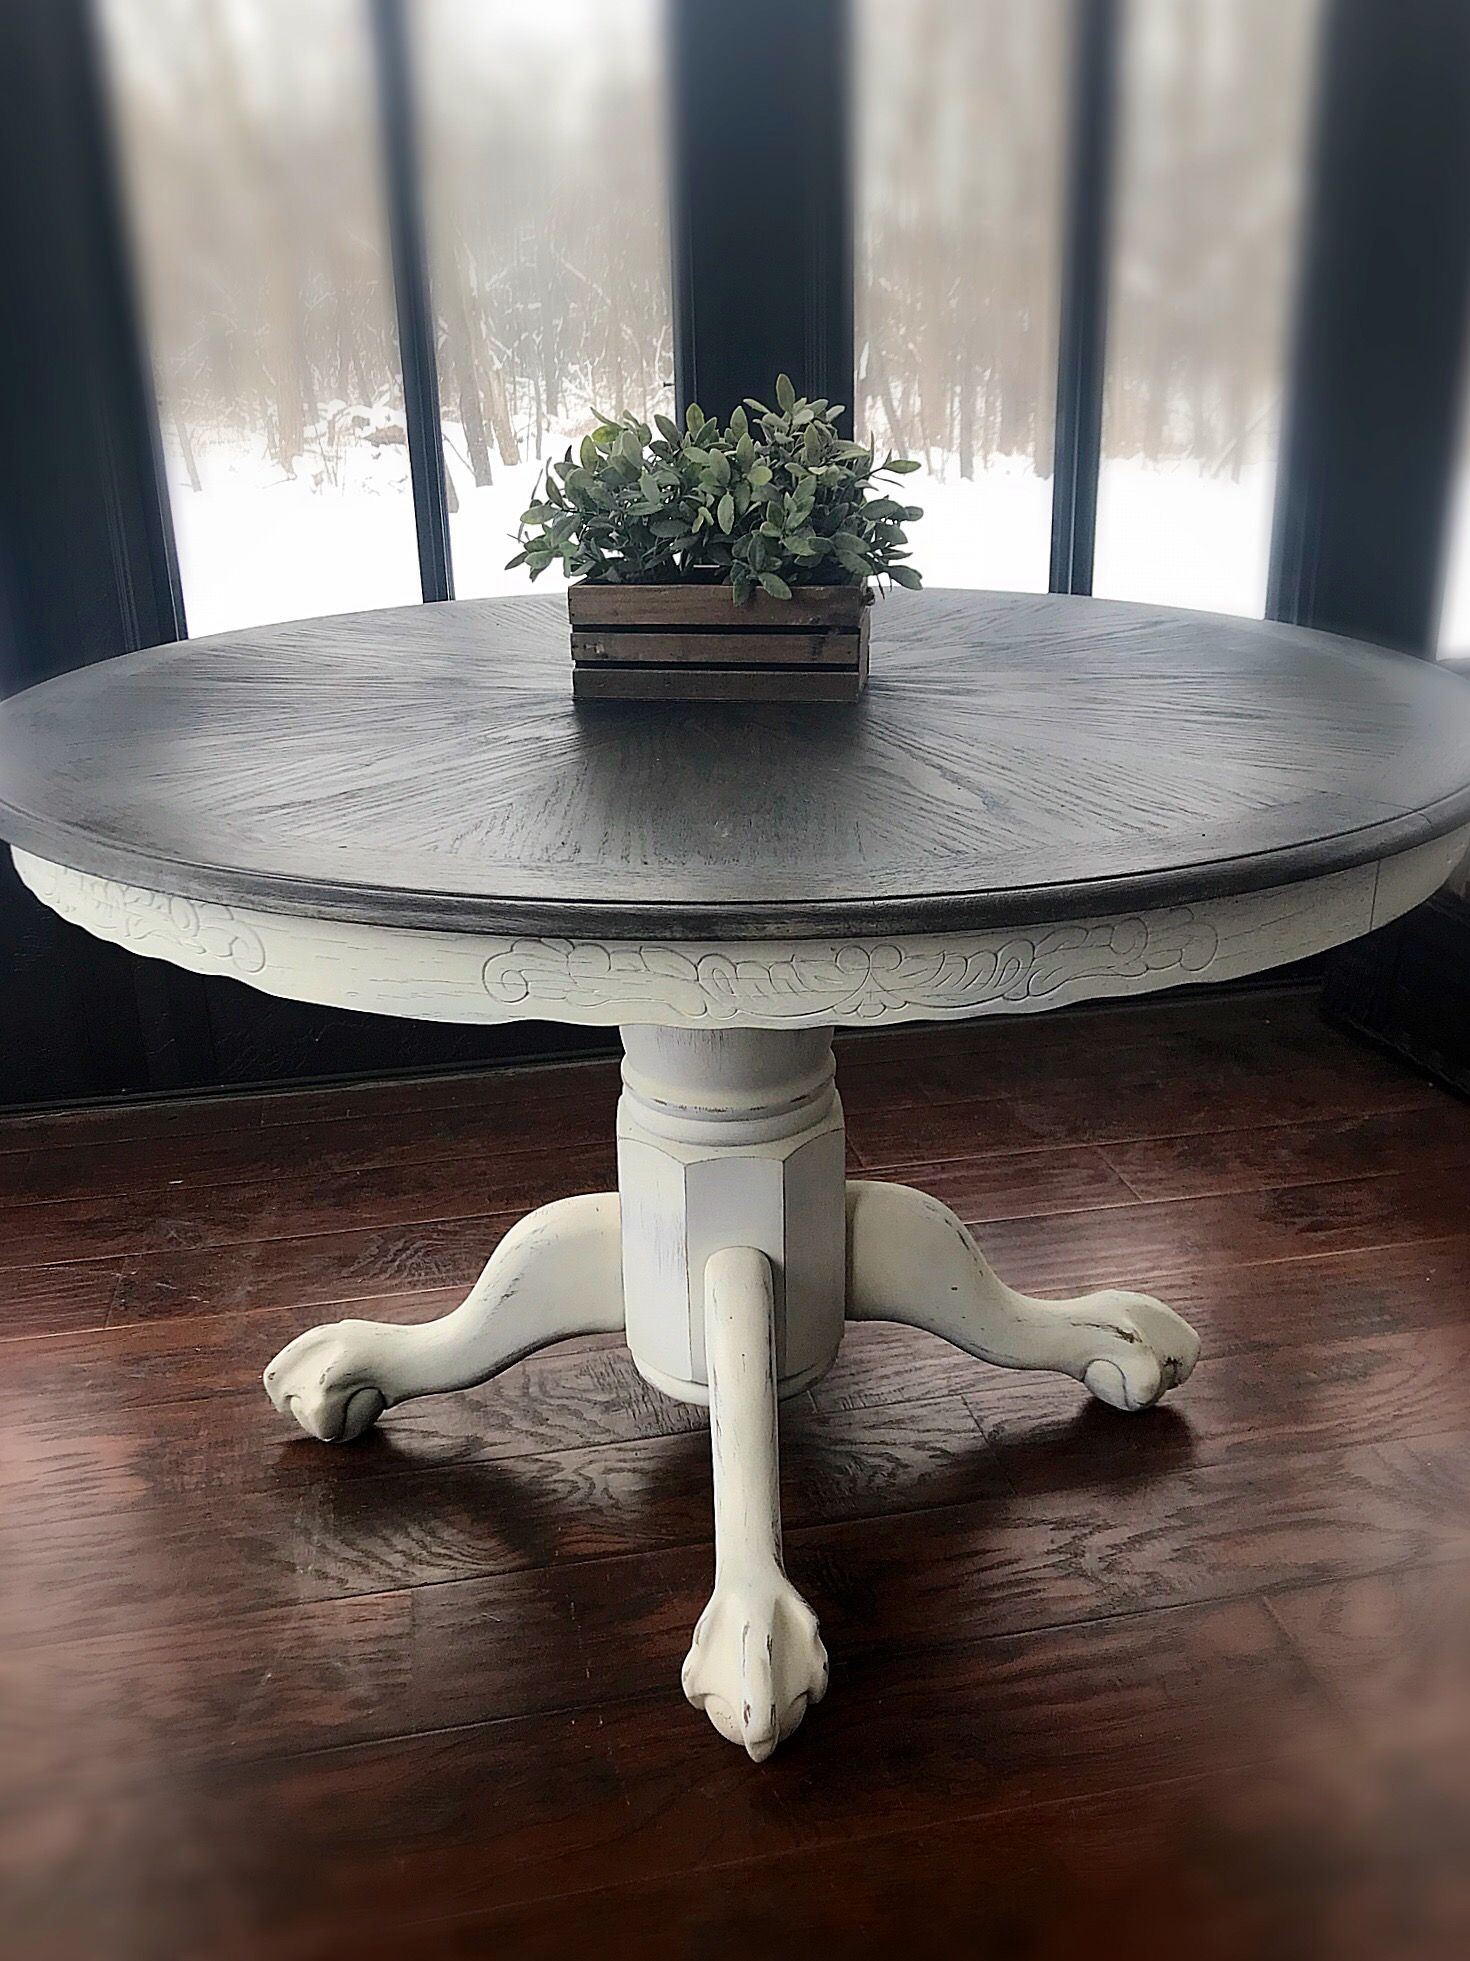 vintage wooden accent table rustic entryway farmhouse dining room country furniture console expandable round kitchen triangular end wood barnwood decorative accents for living